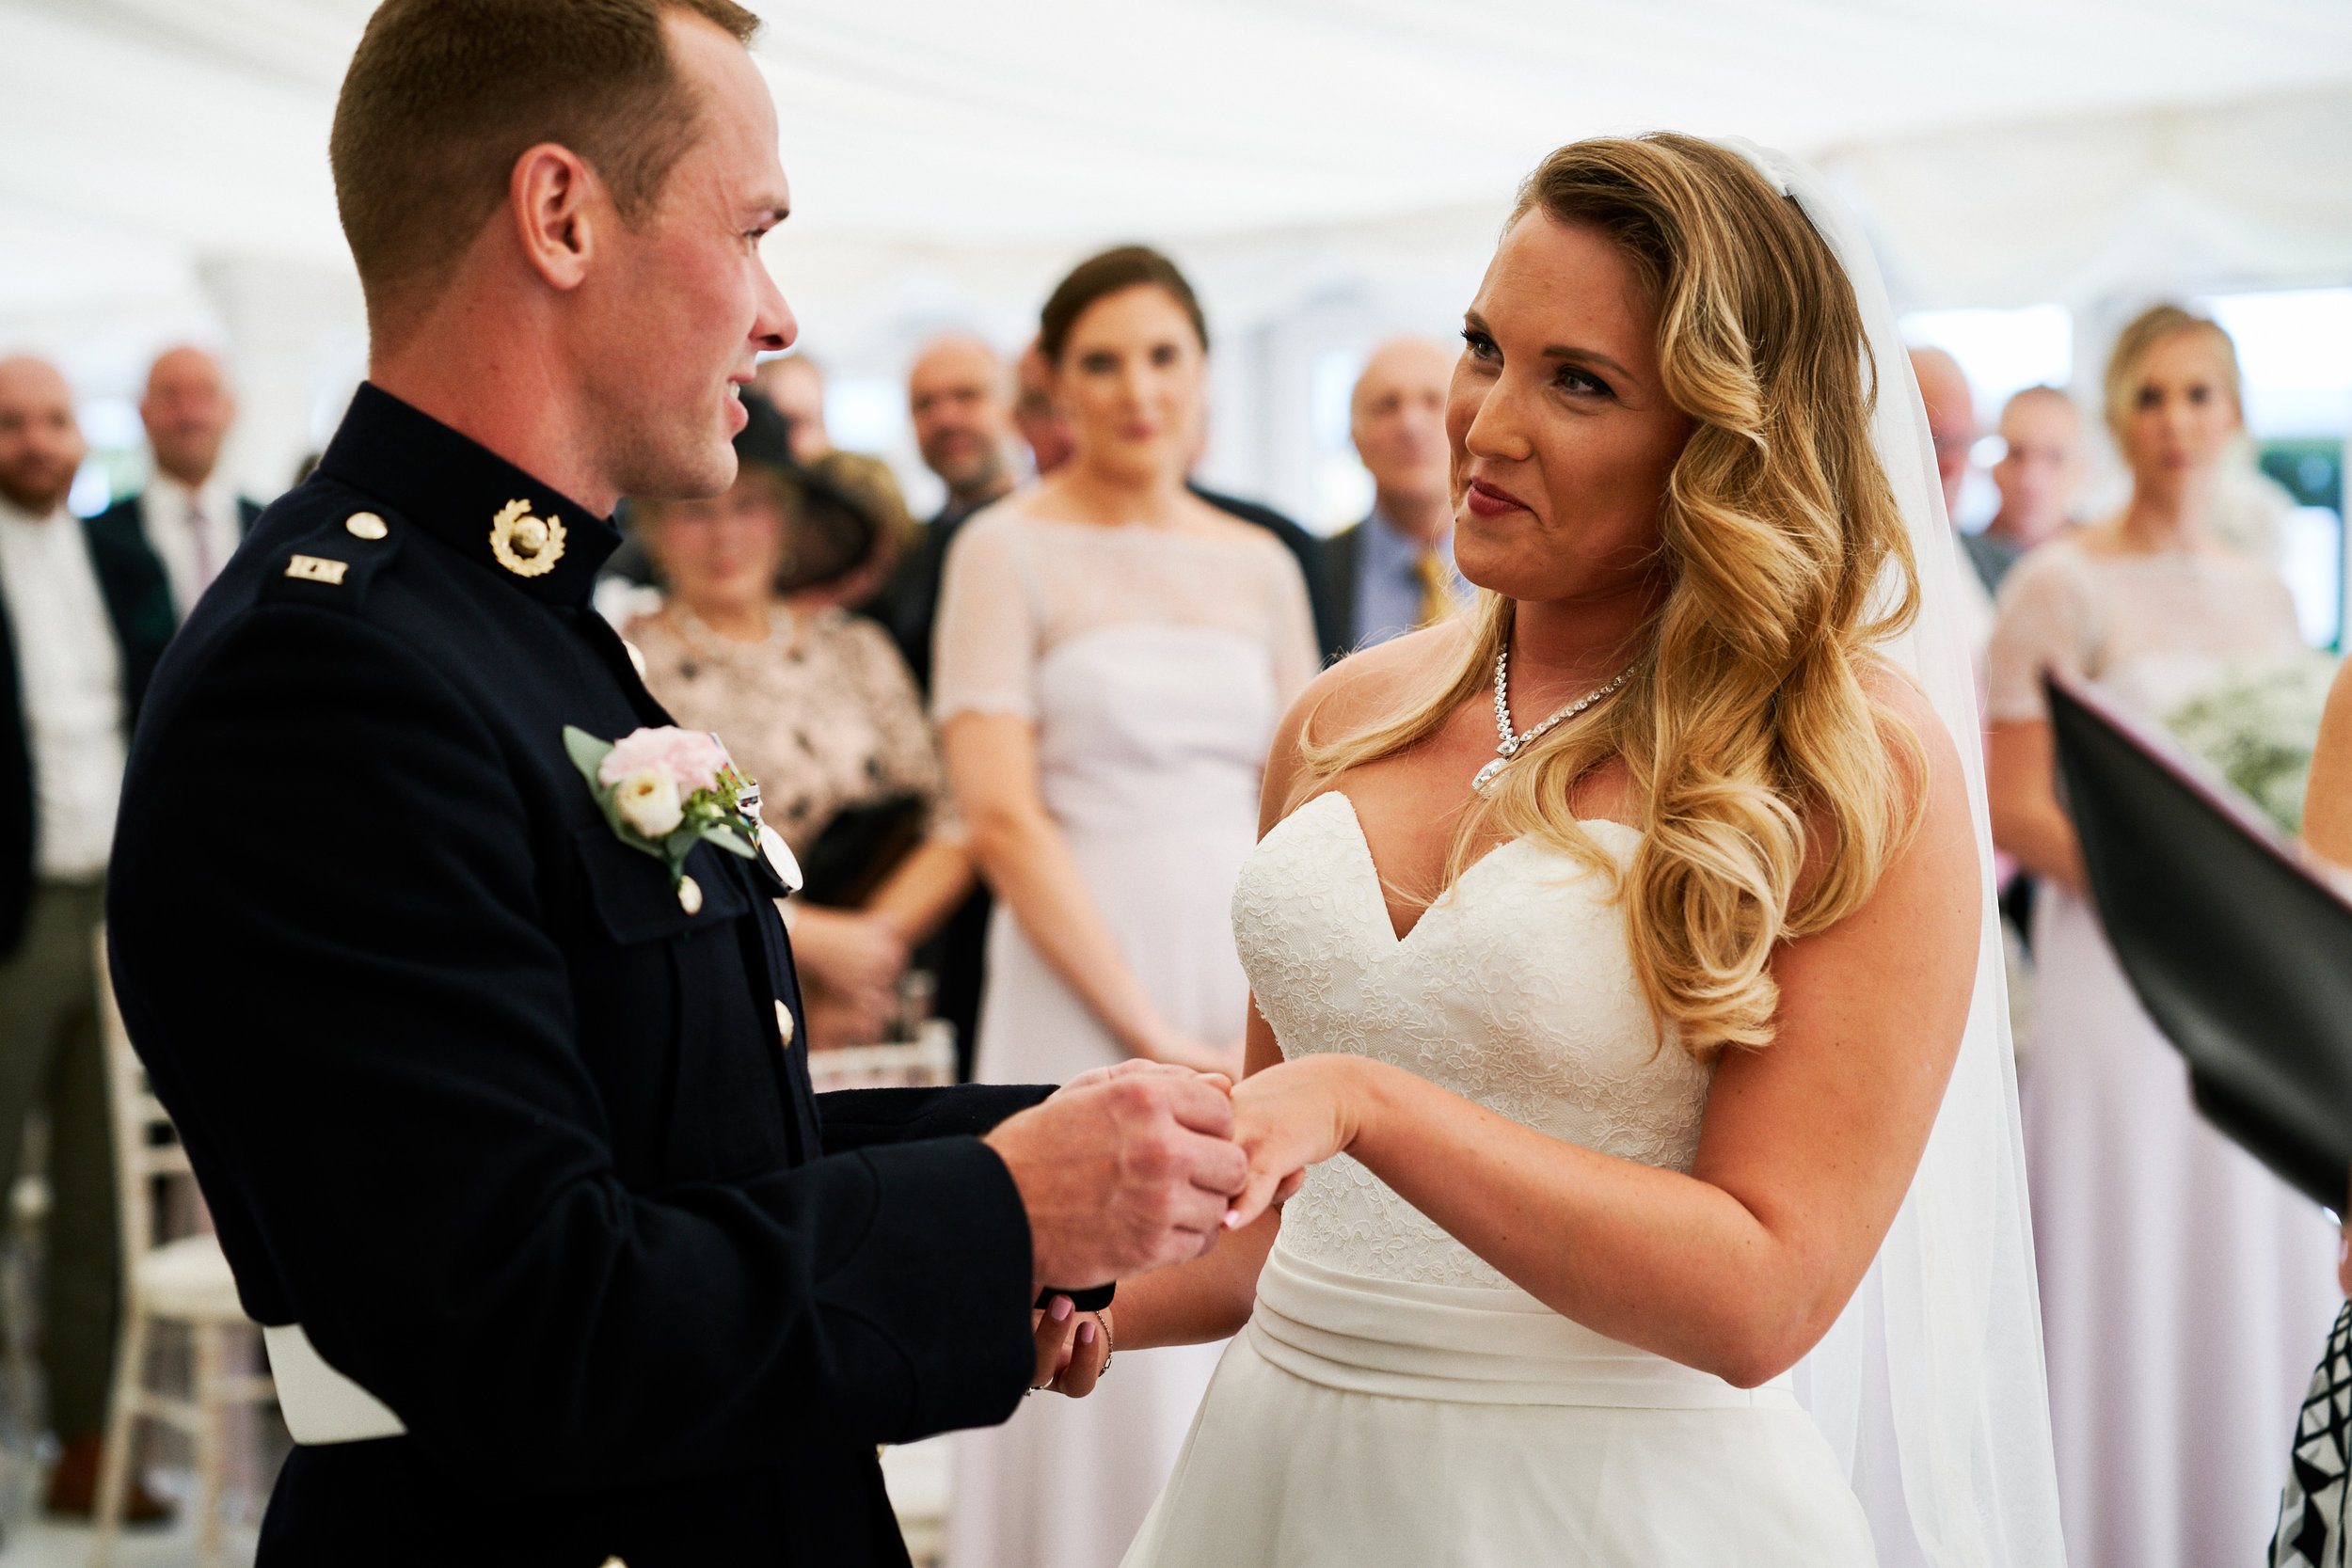 Saying The Vows - A romantic outdoor setting at Trunkwell House